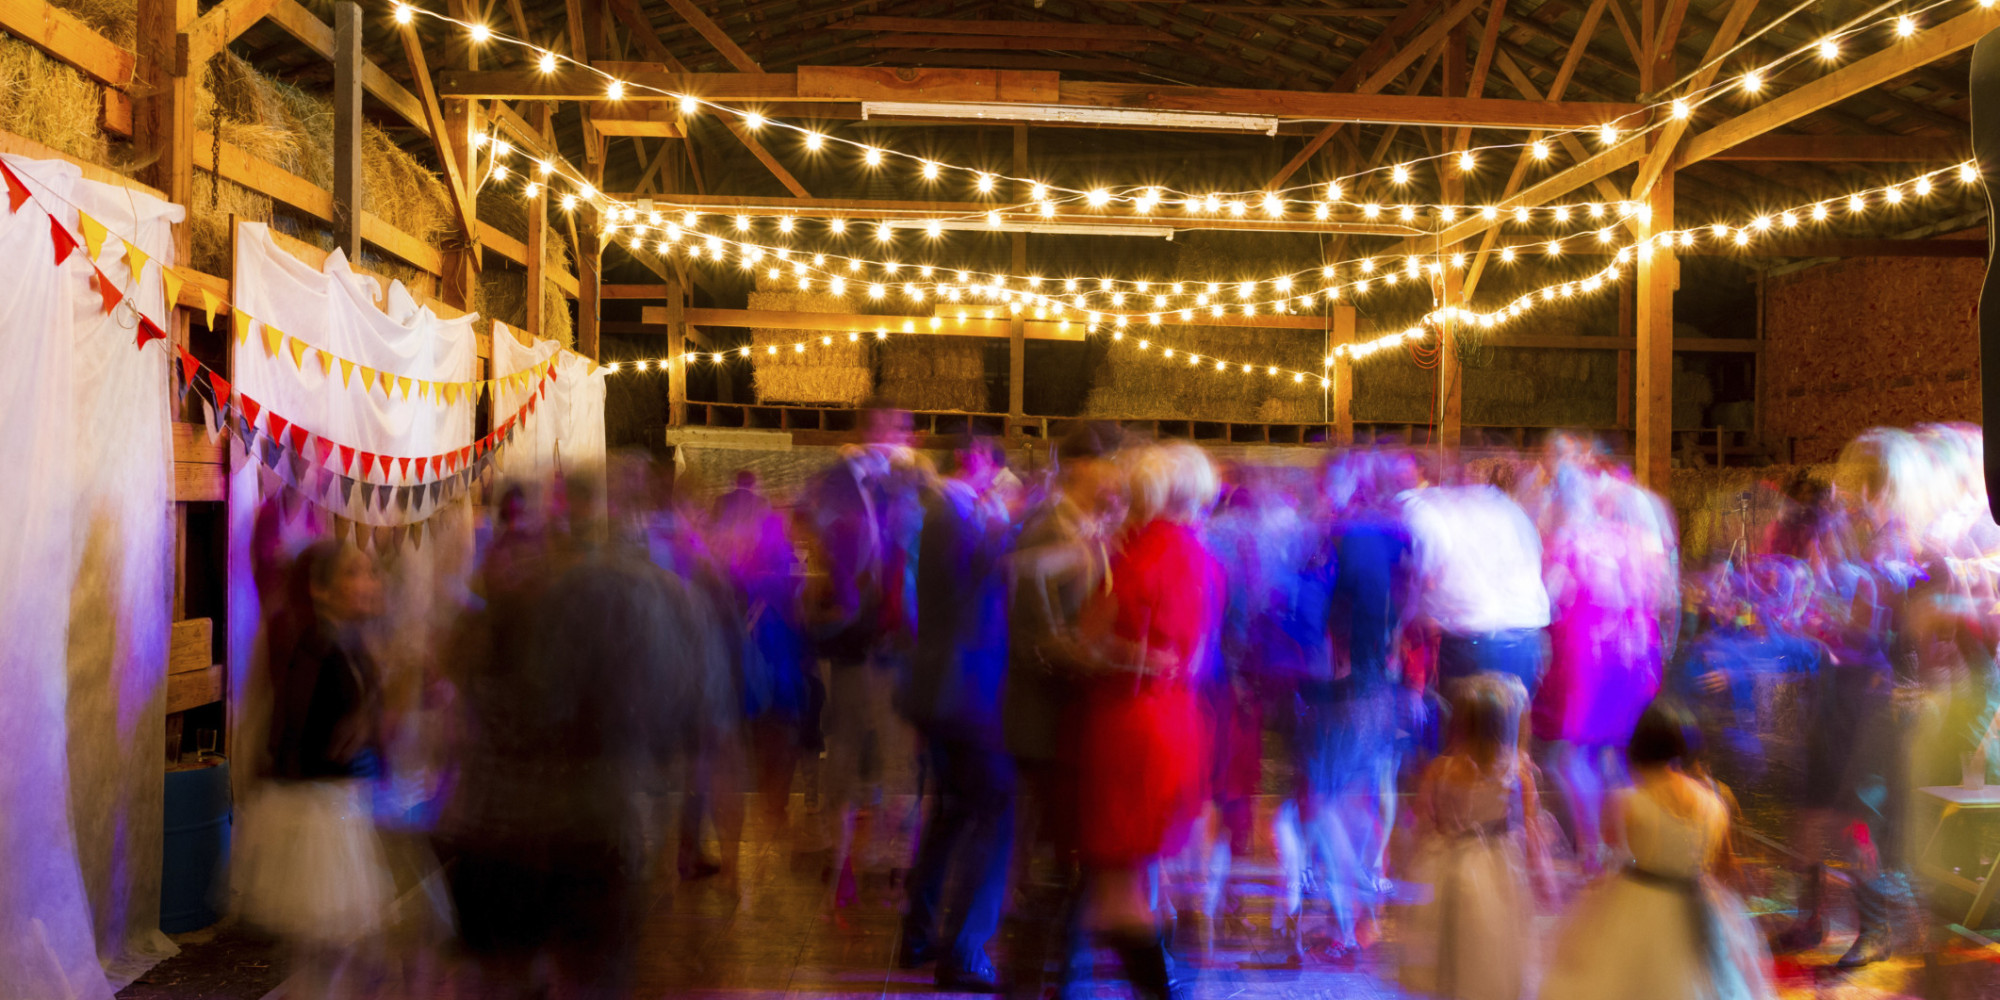 10 Things To Know About The Farm Barn Wedding You Want